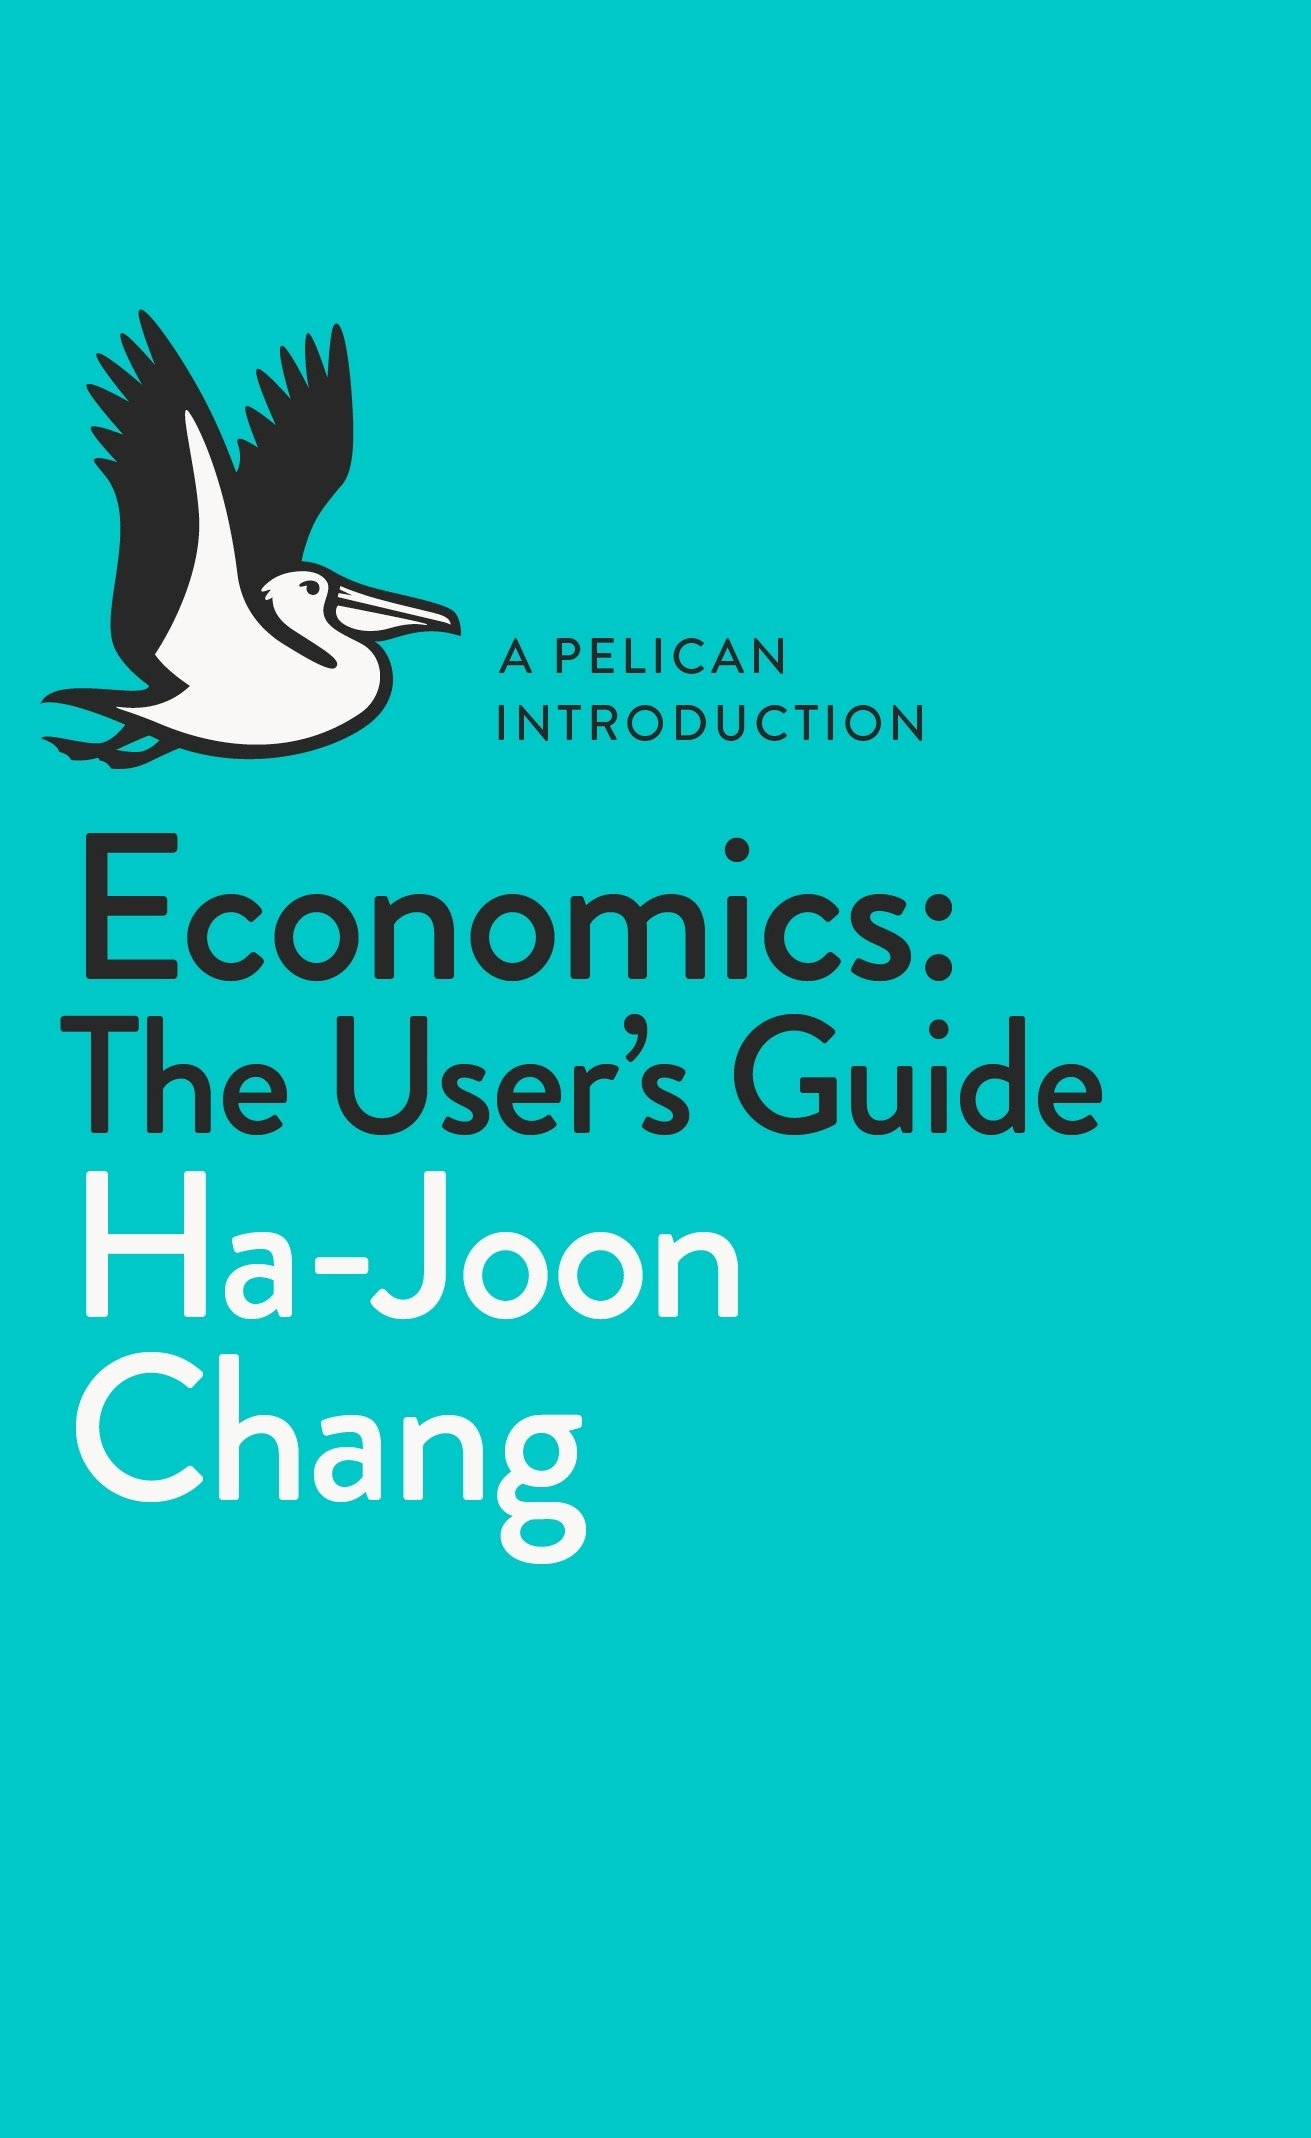 a pelican introduction economics a user s guide ha joon chang rh amazon com Amazon Kindle Fire User's Guide Epson User's Guide